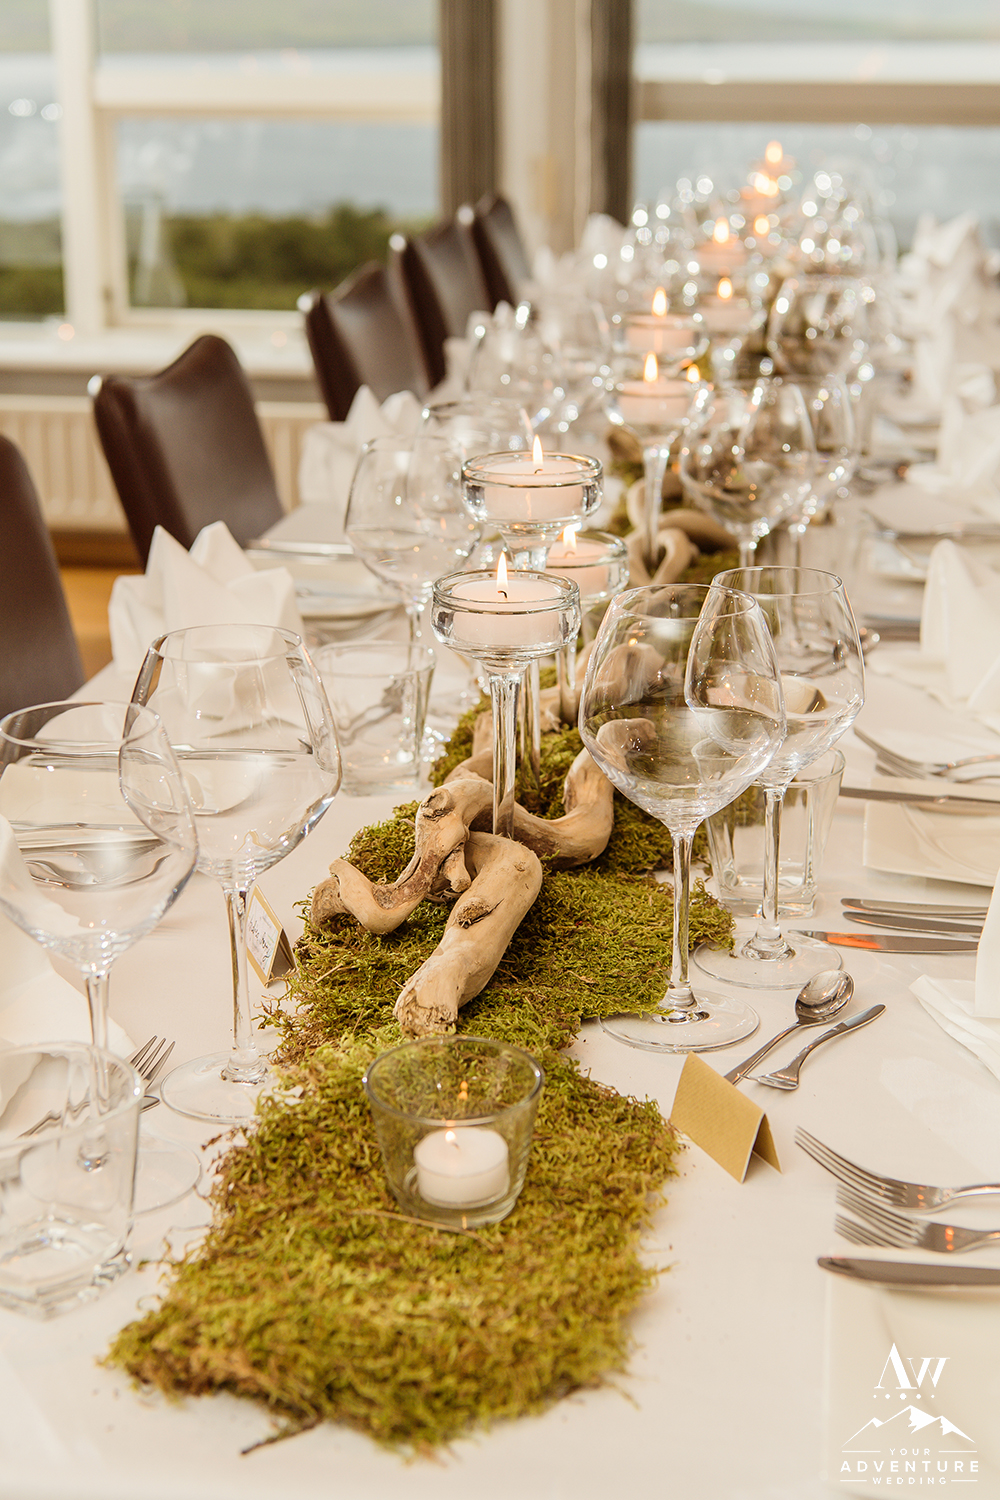 moss-sticks-and-candle-centerpiece-iceland-wedding-planner